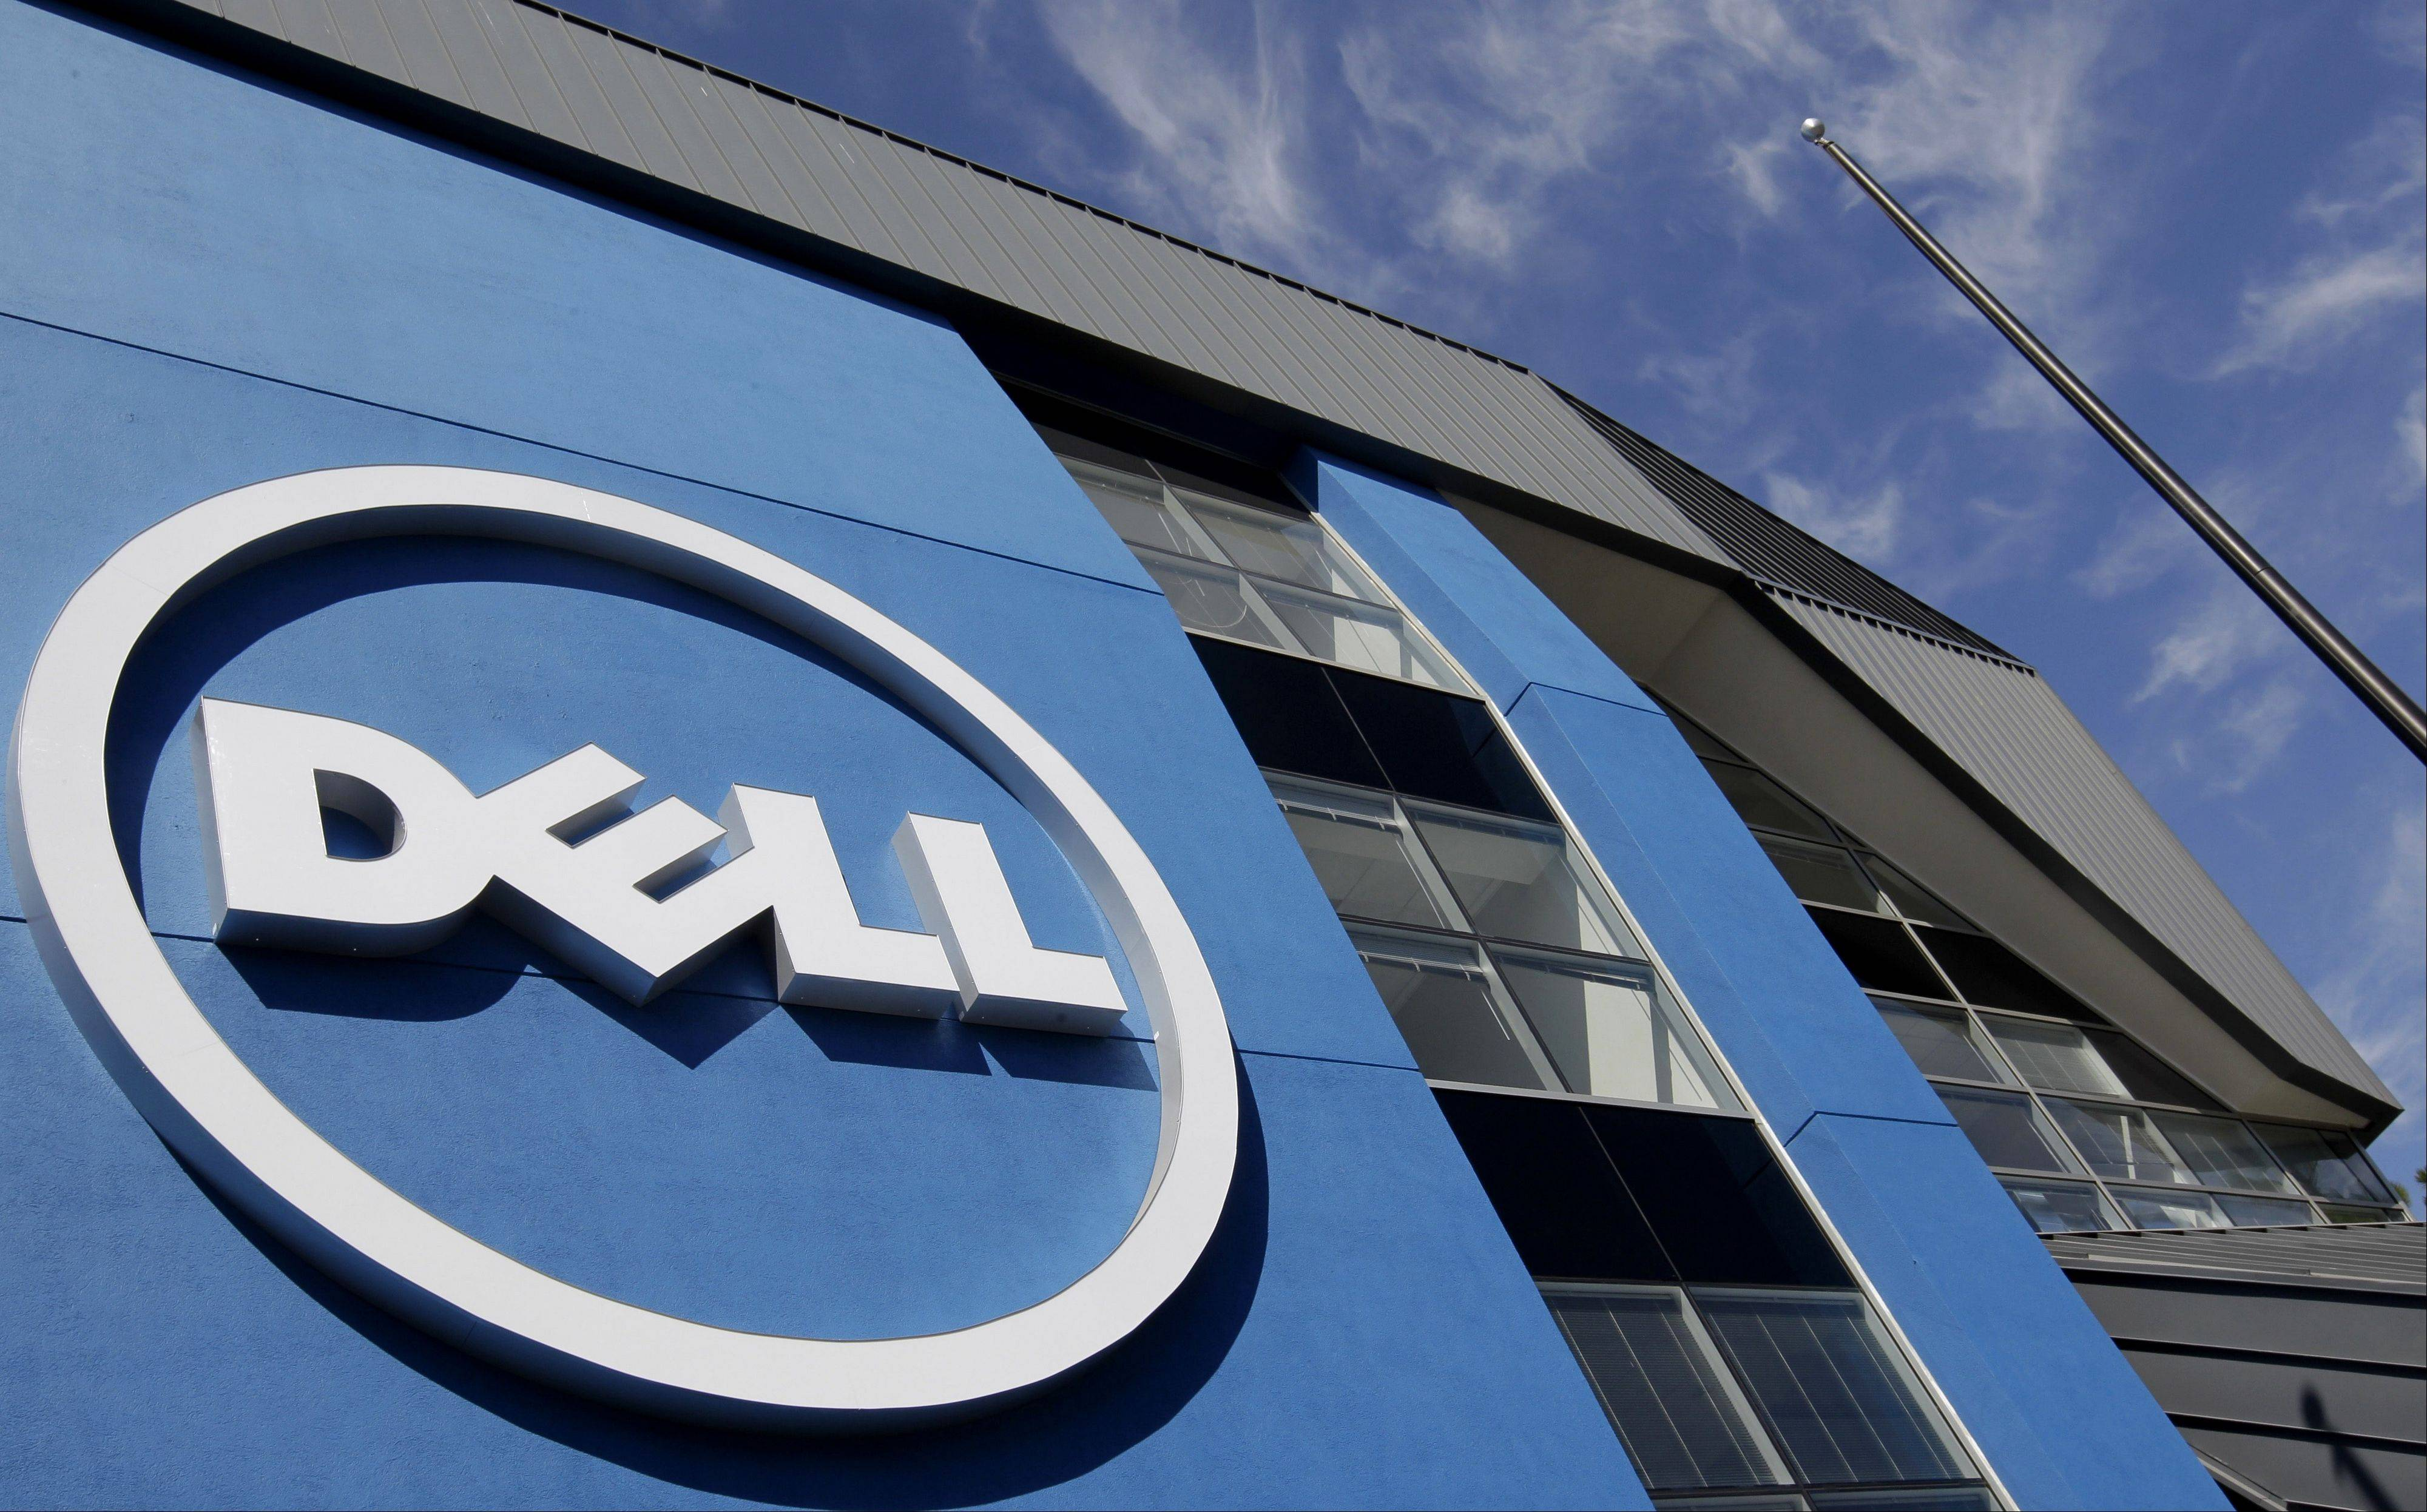 With the deadline looming, buyout specialist Blackstone Group is emerging as the most likely candidate to trump the current Dell buyout bid of $13.65 per share.